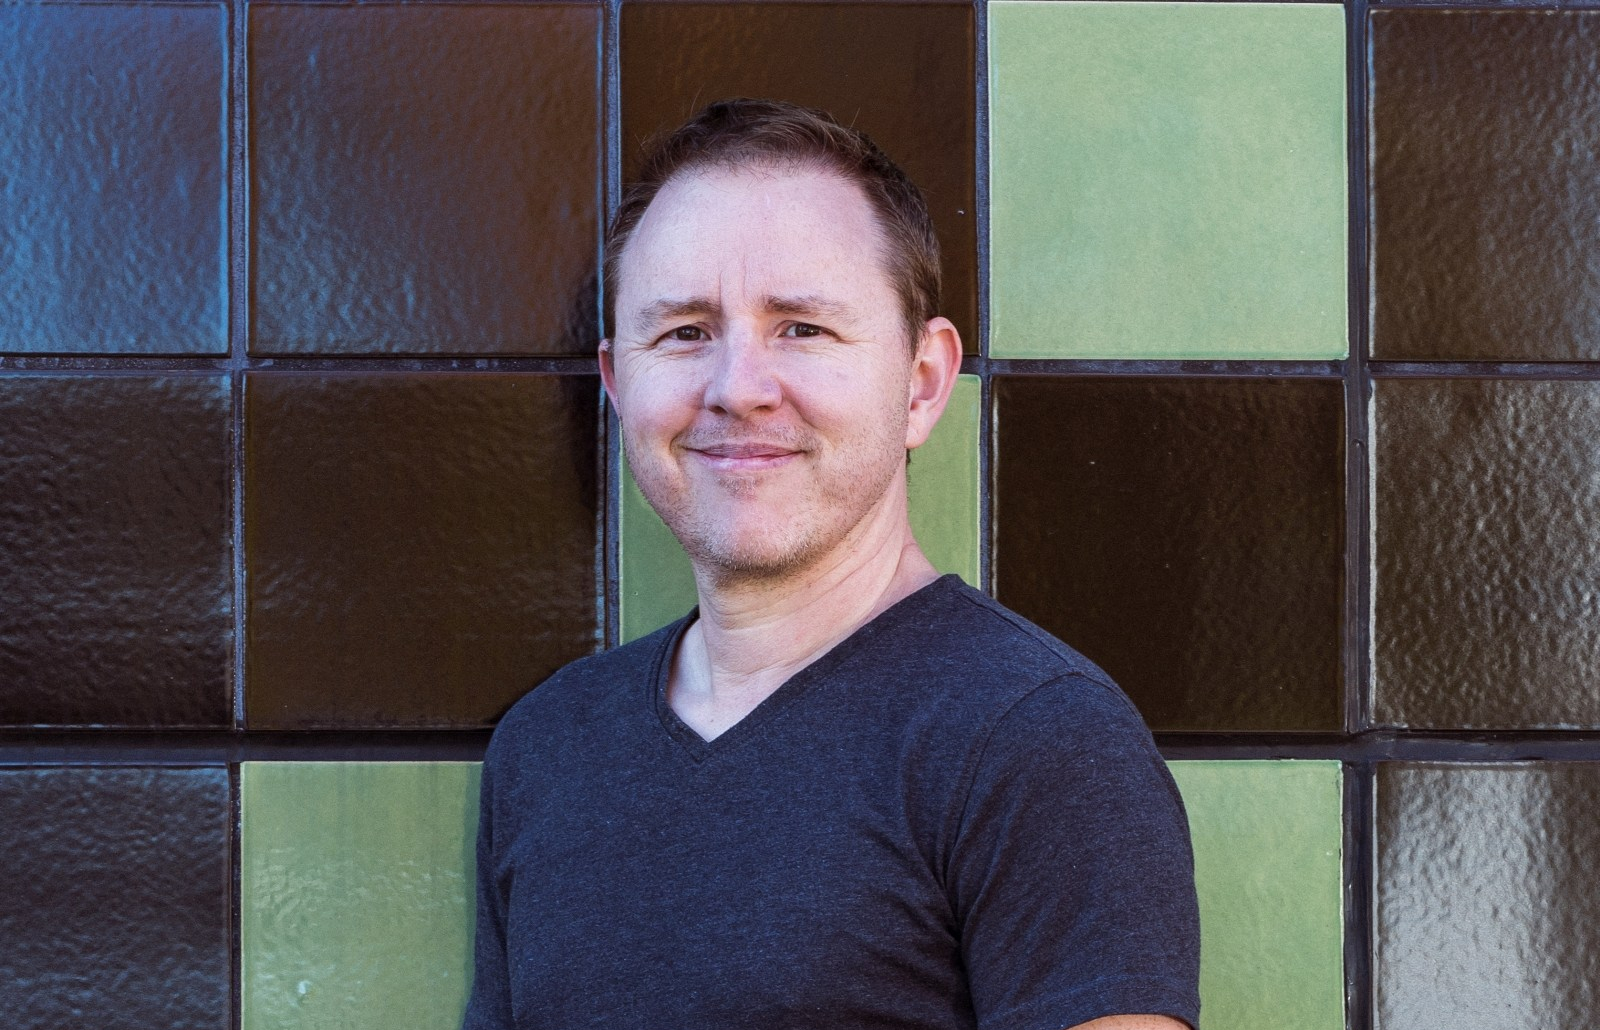 Ed Orman, Co-Founder/Director of local legendary makers Uppercut Games, waxes career and craft ahead of his NFSA talk